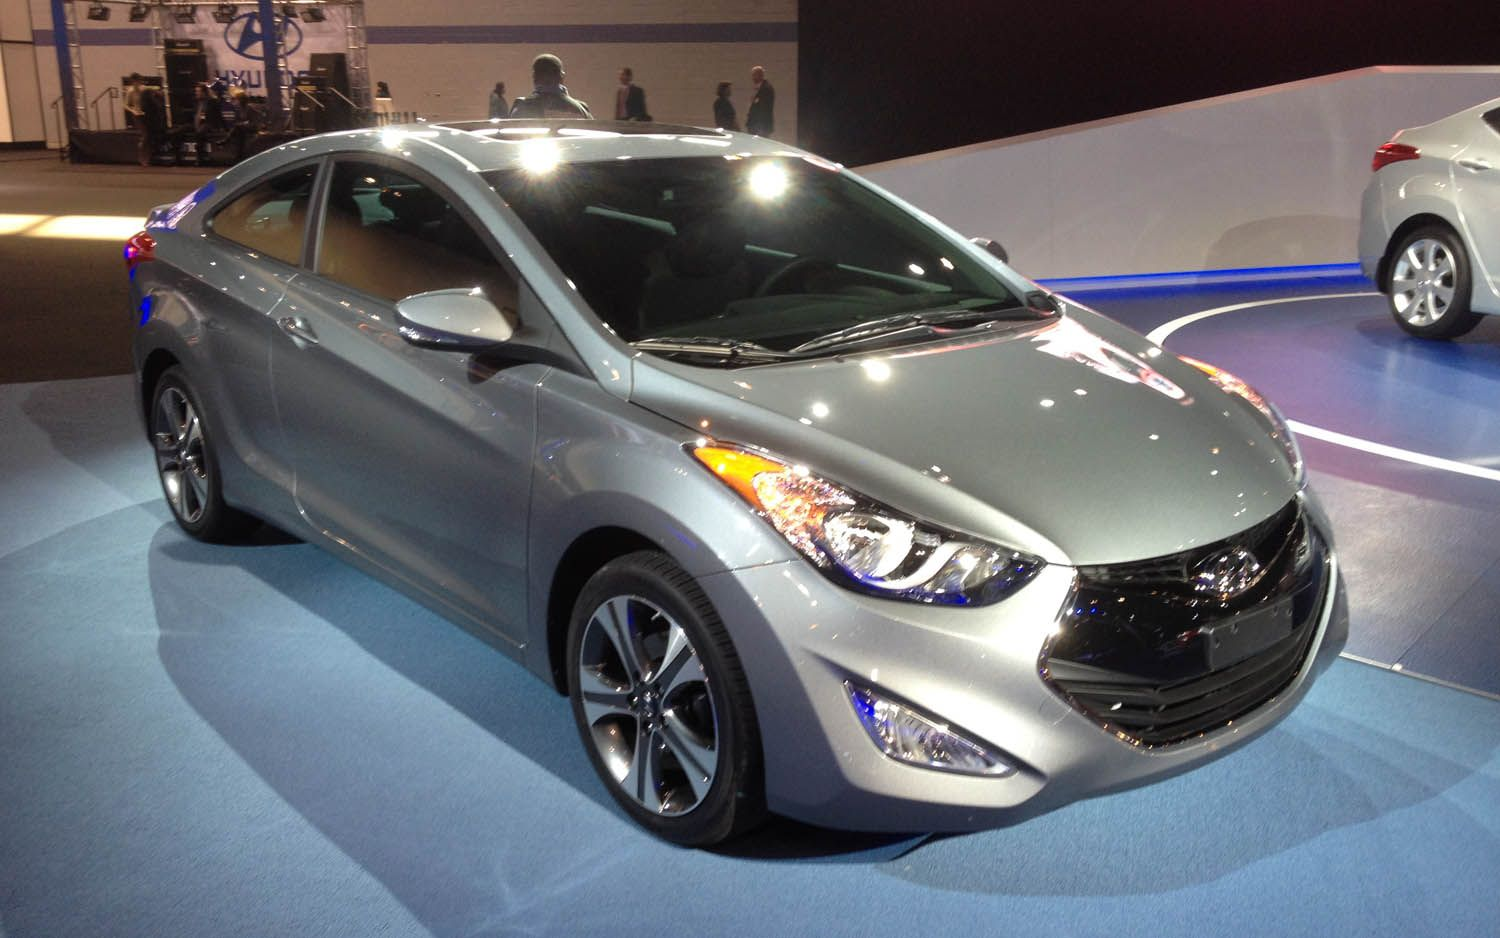 2015 hyundai elantra has great styling and very good at fuel economy with its new interior and exterior design it will be a great car model to choose